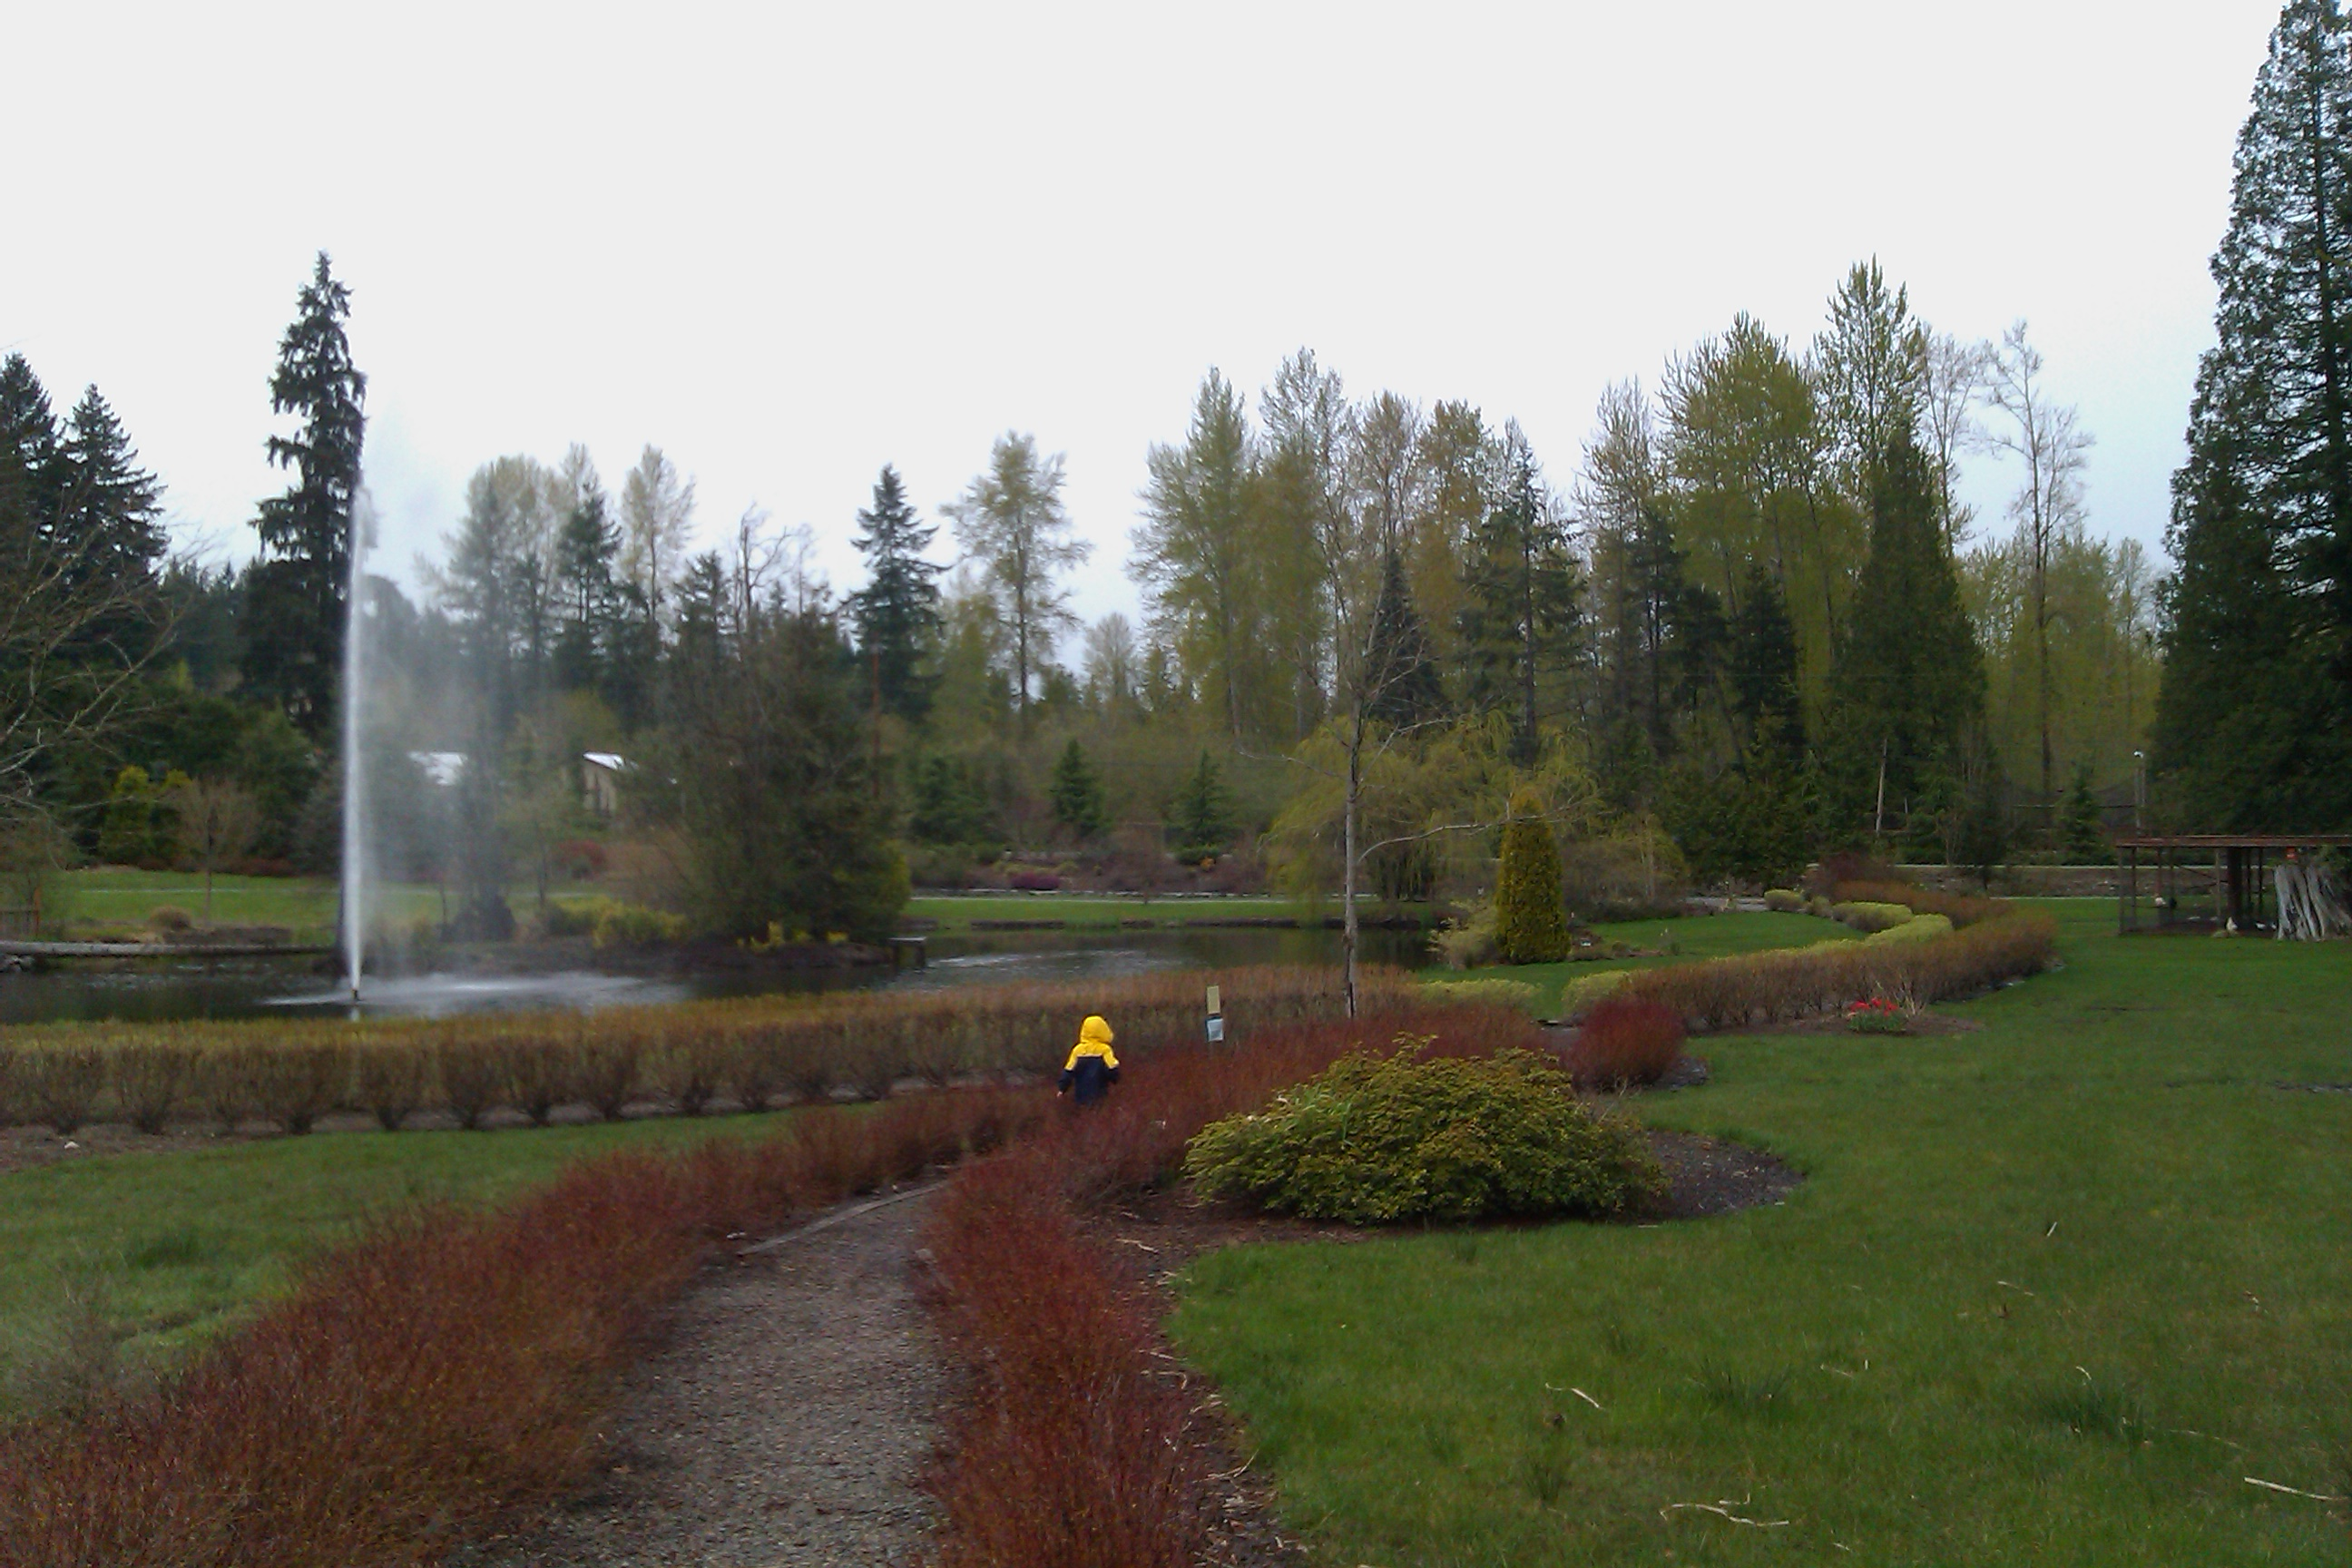 boy in rain jacket walking ahead on gravel path by pond